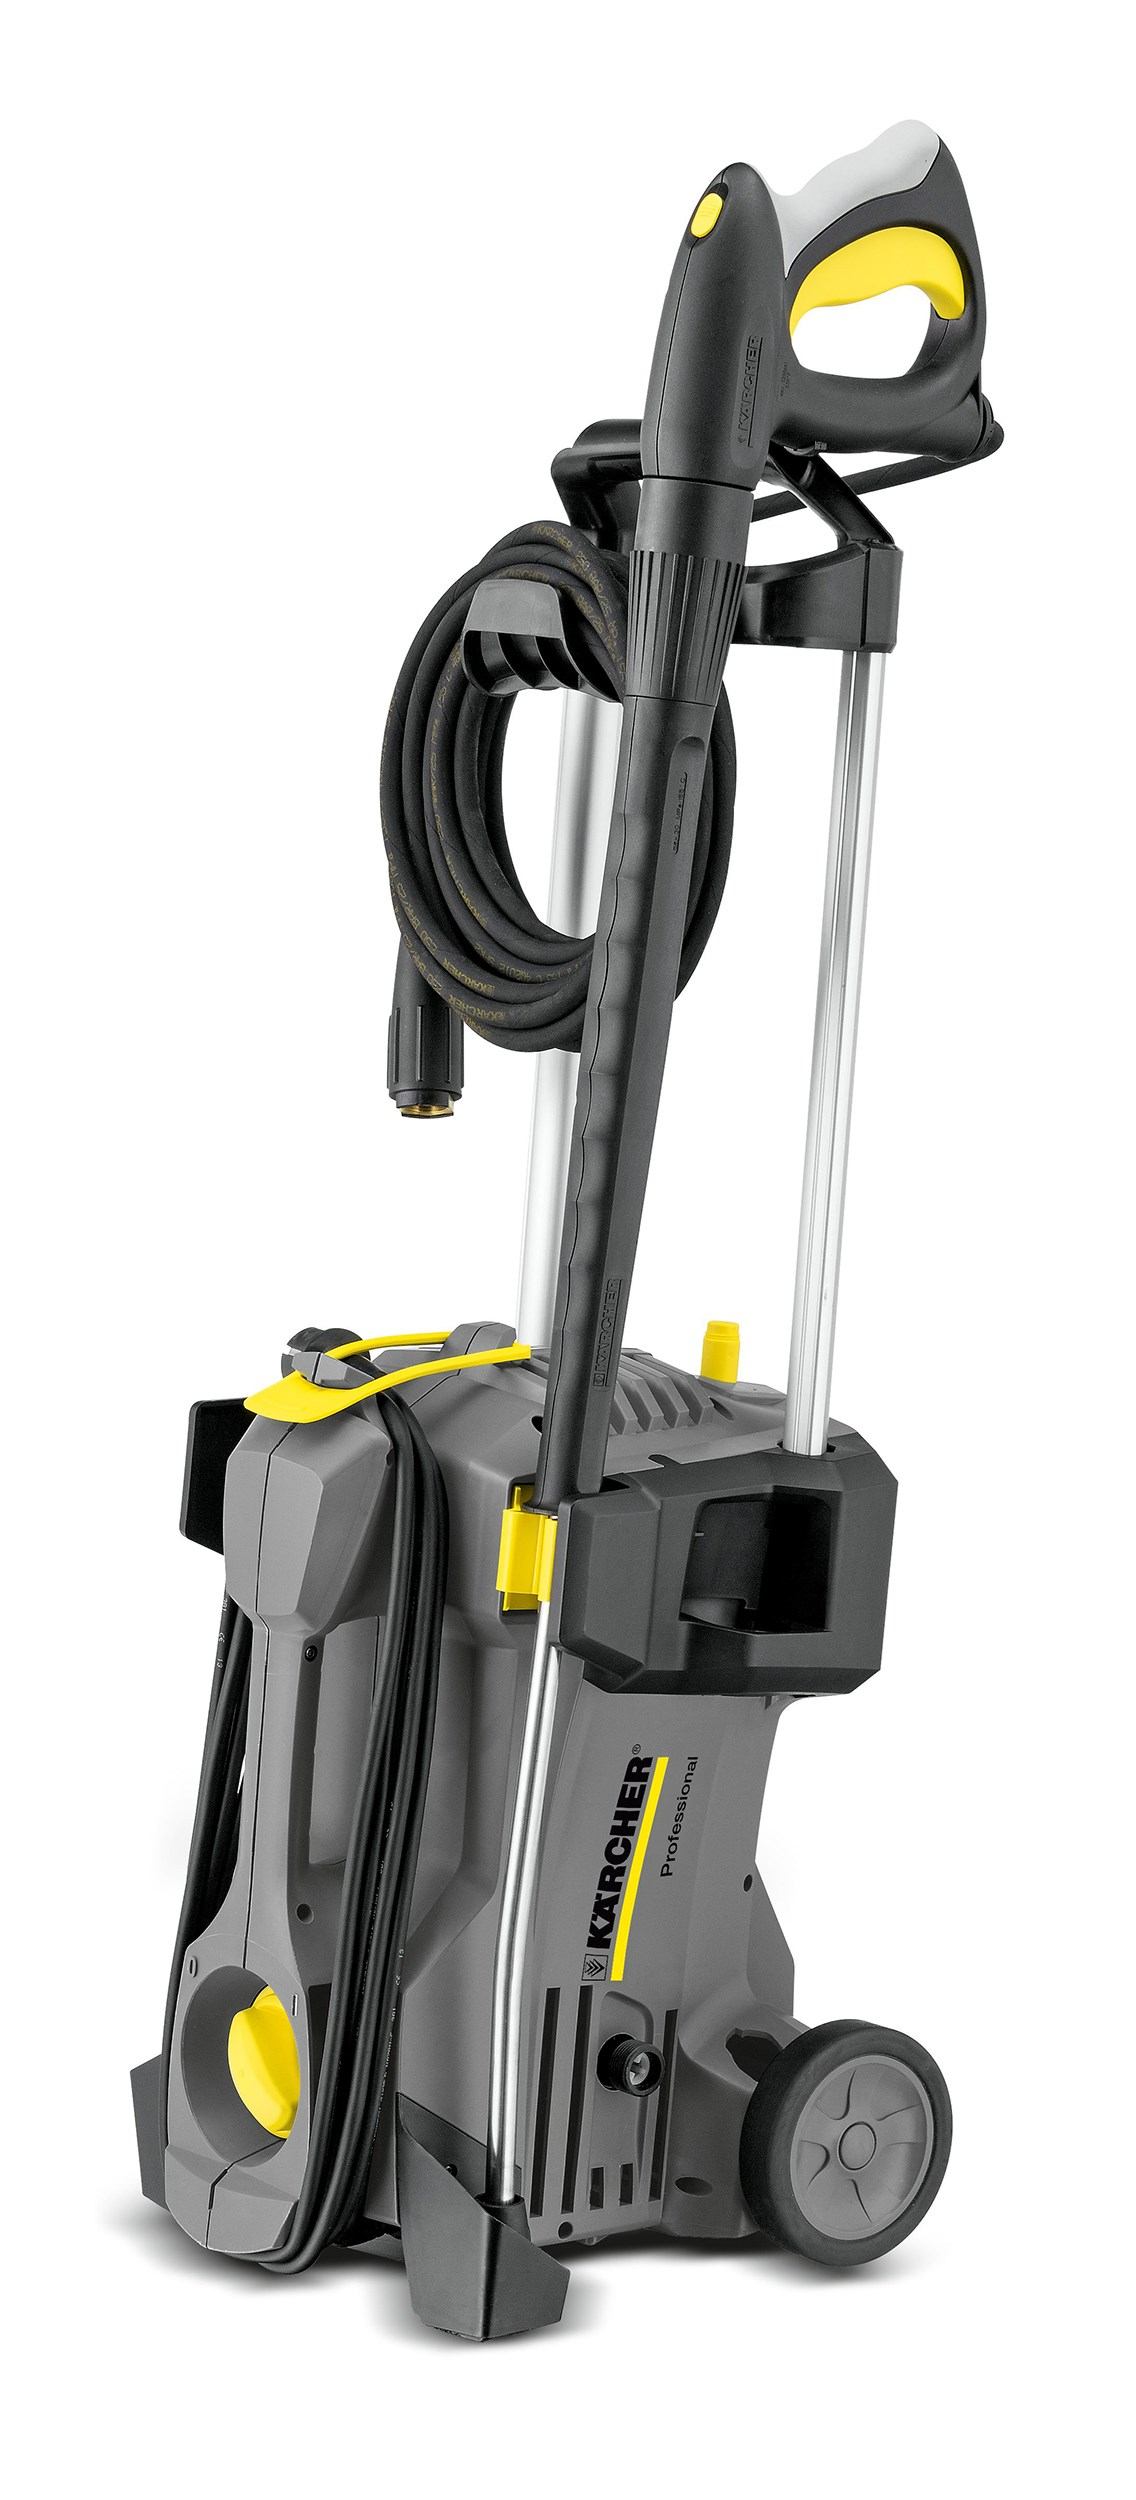 K 228 Rcher Pro Hd 400 Pressure Washer Electric Power